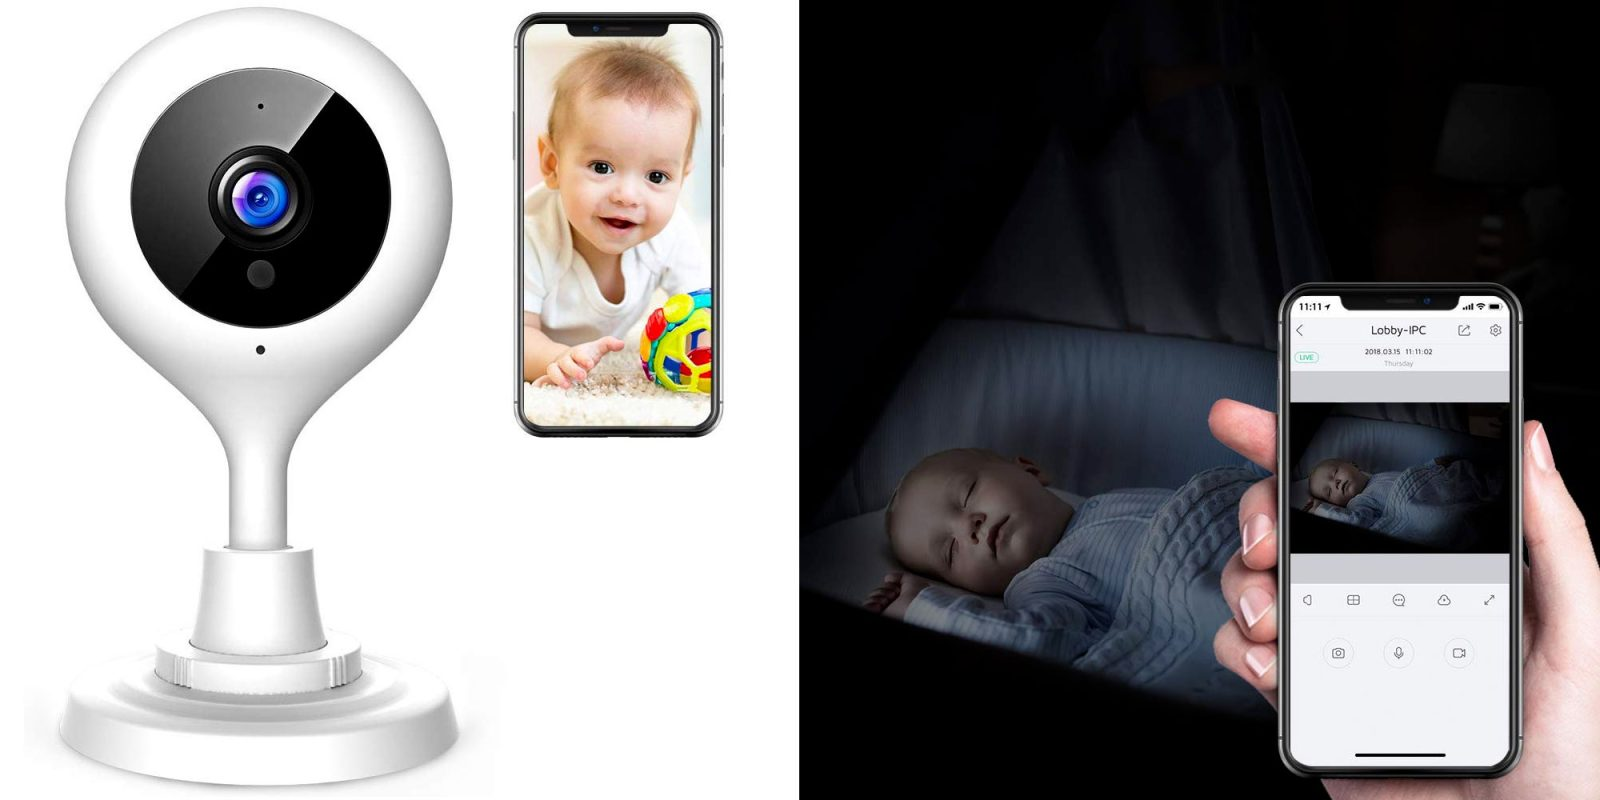 For $19.50 it's easy to keep an eye on your baby with this 1080p camera